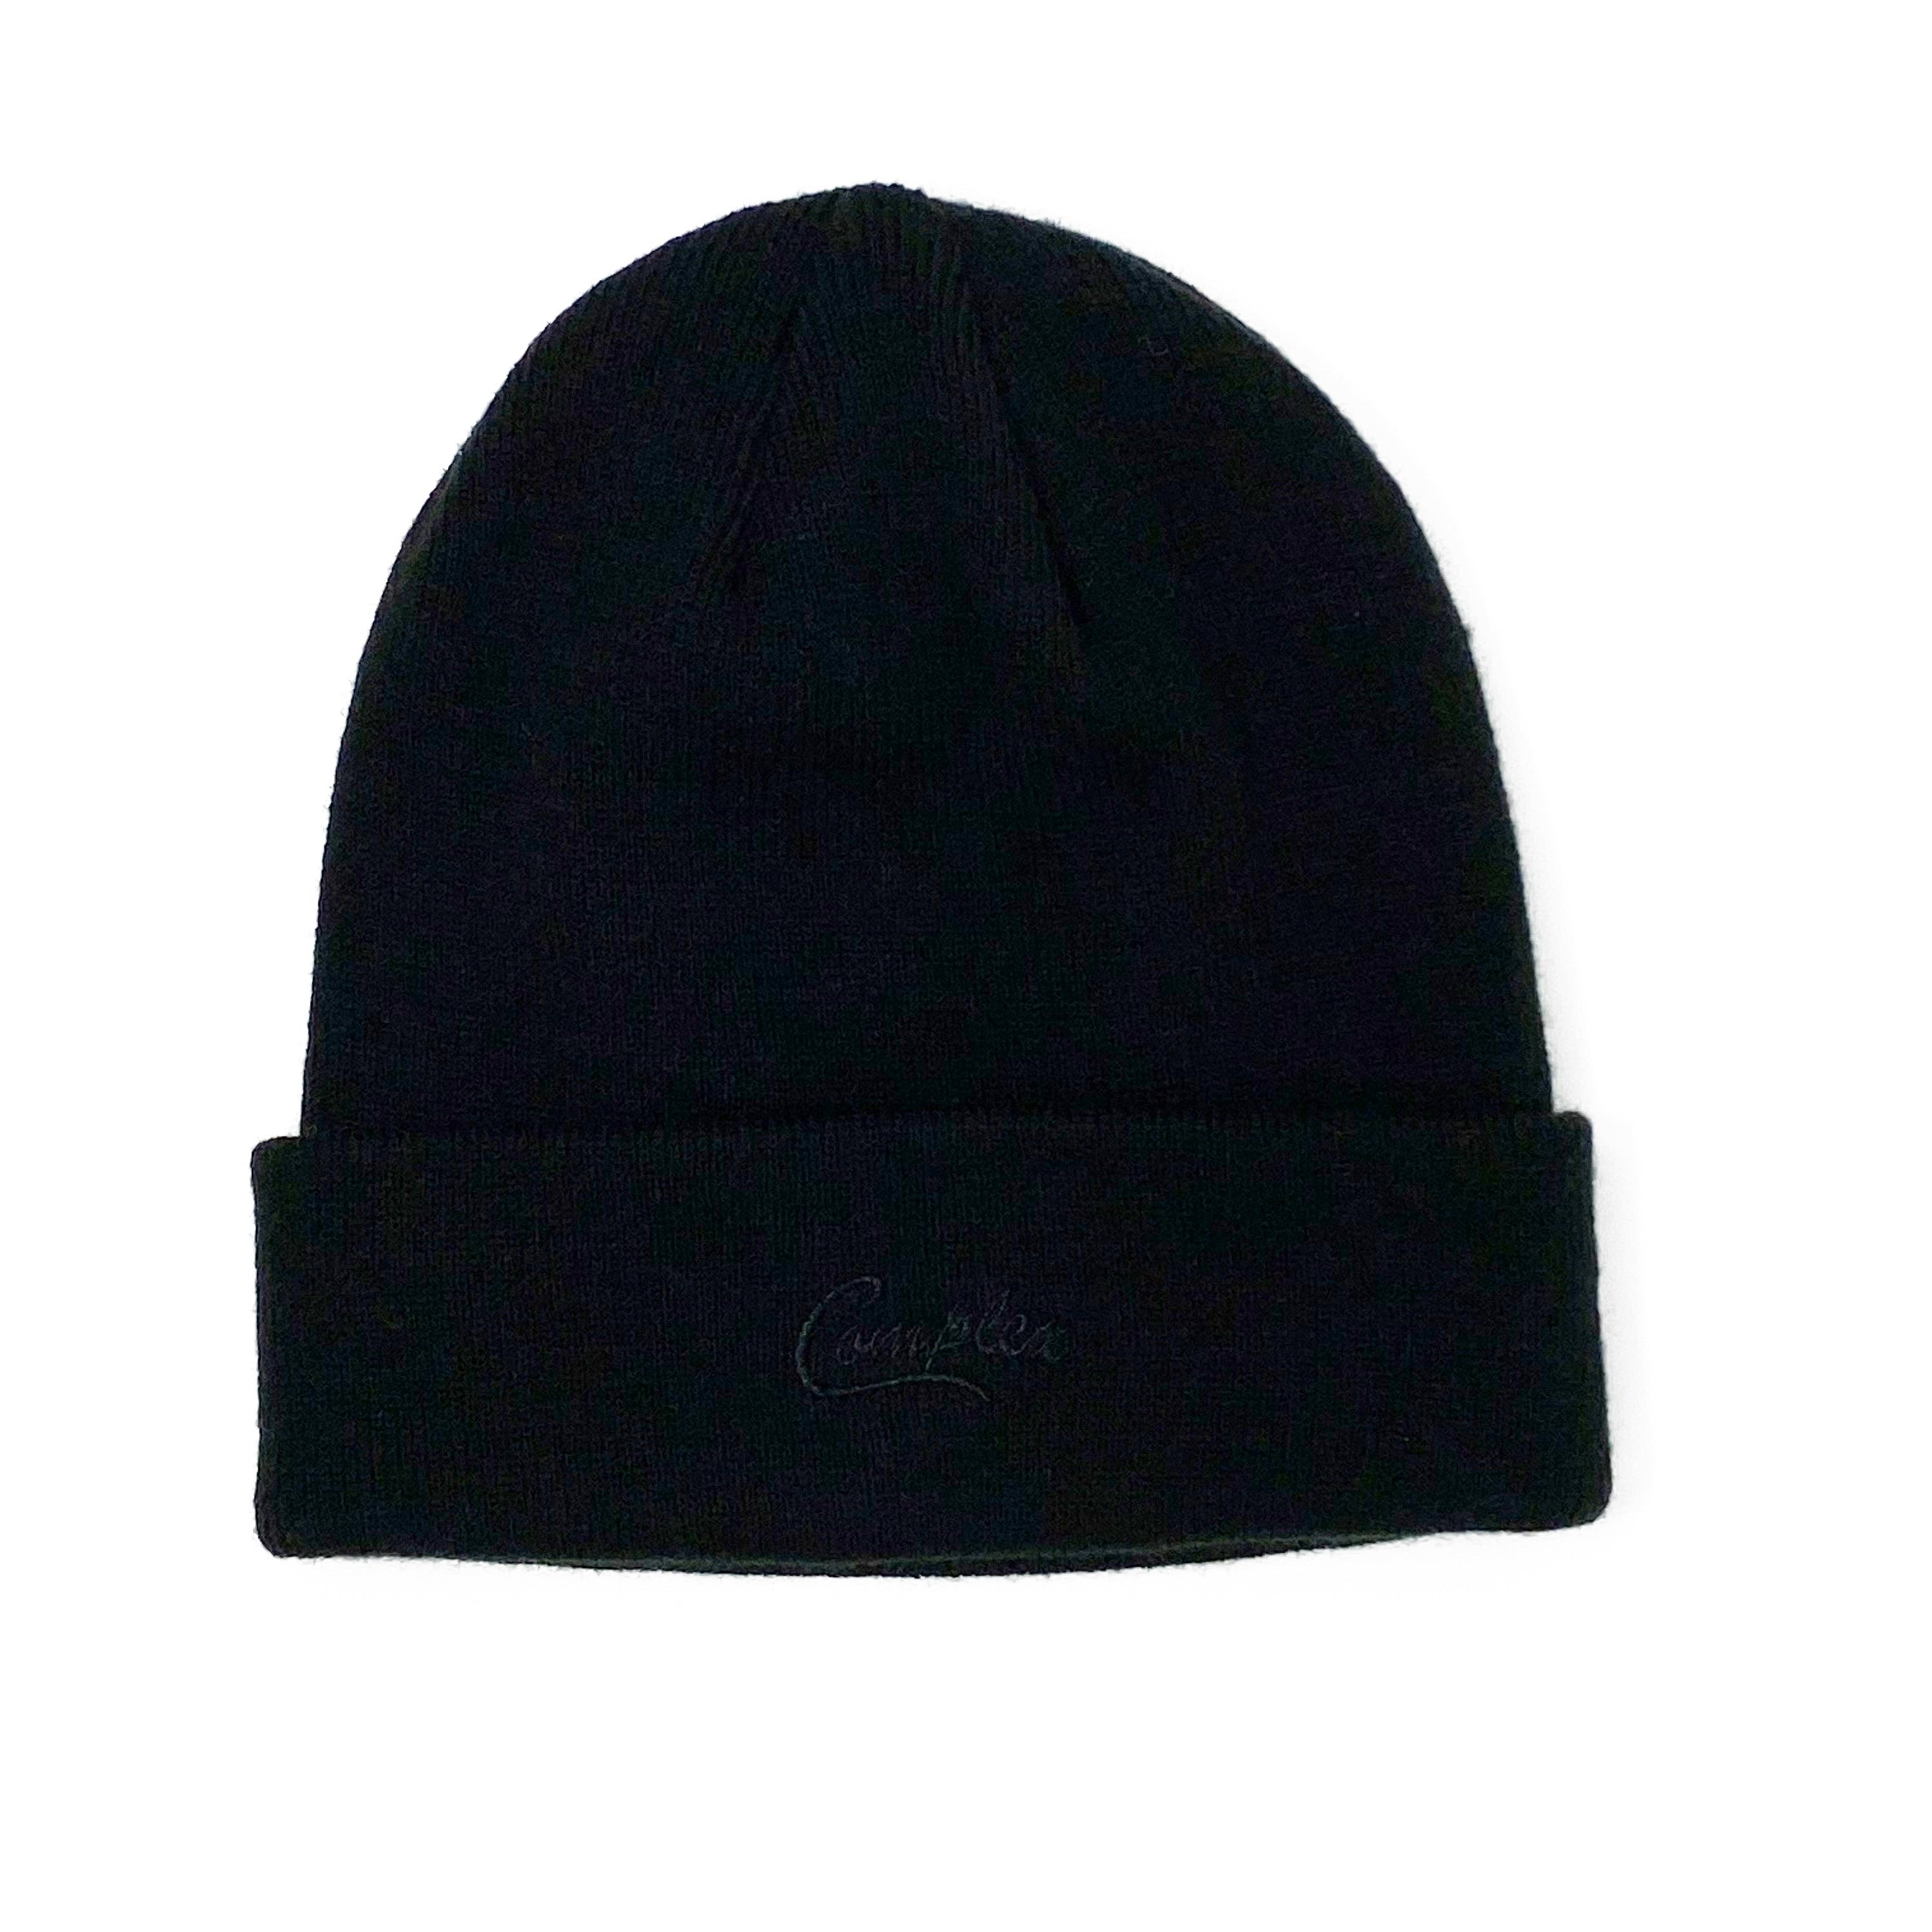 Embroidered Script Beanie Black Tonal